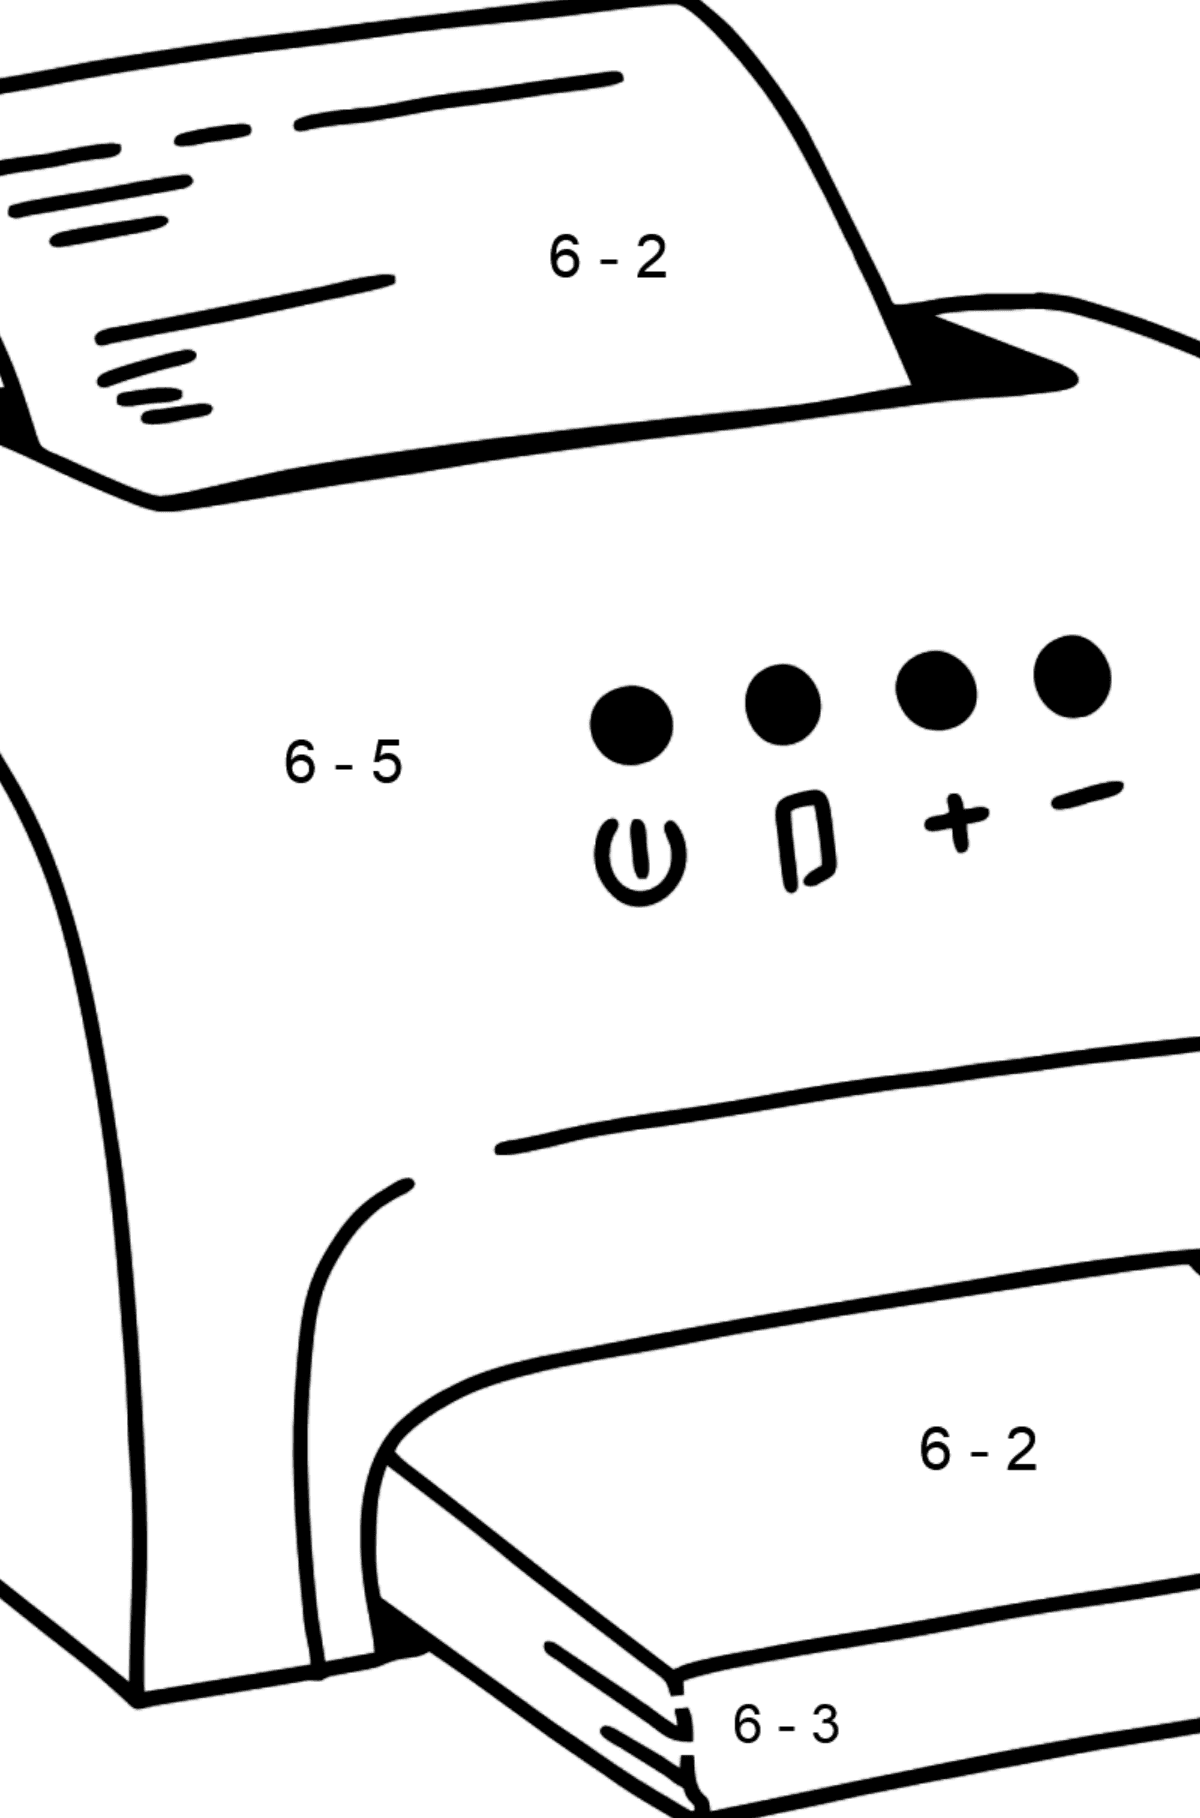 Printer coloring page - Math Coloring - Subtraction for Kids